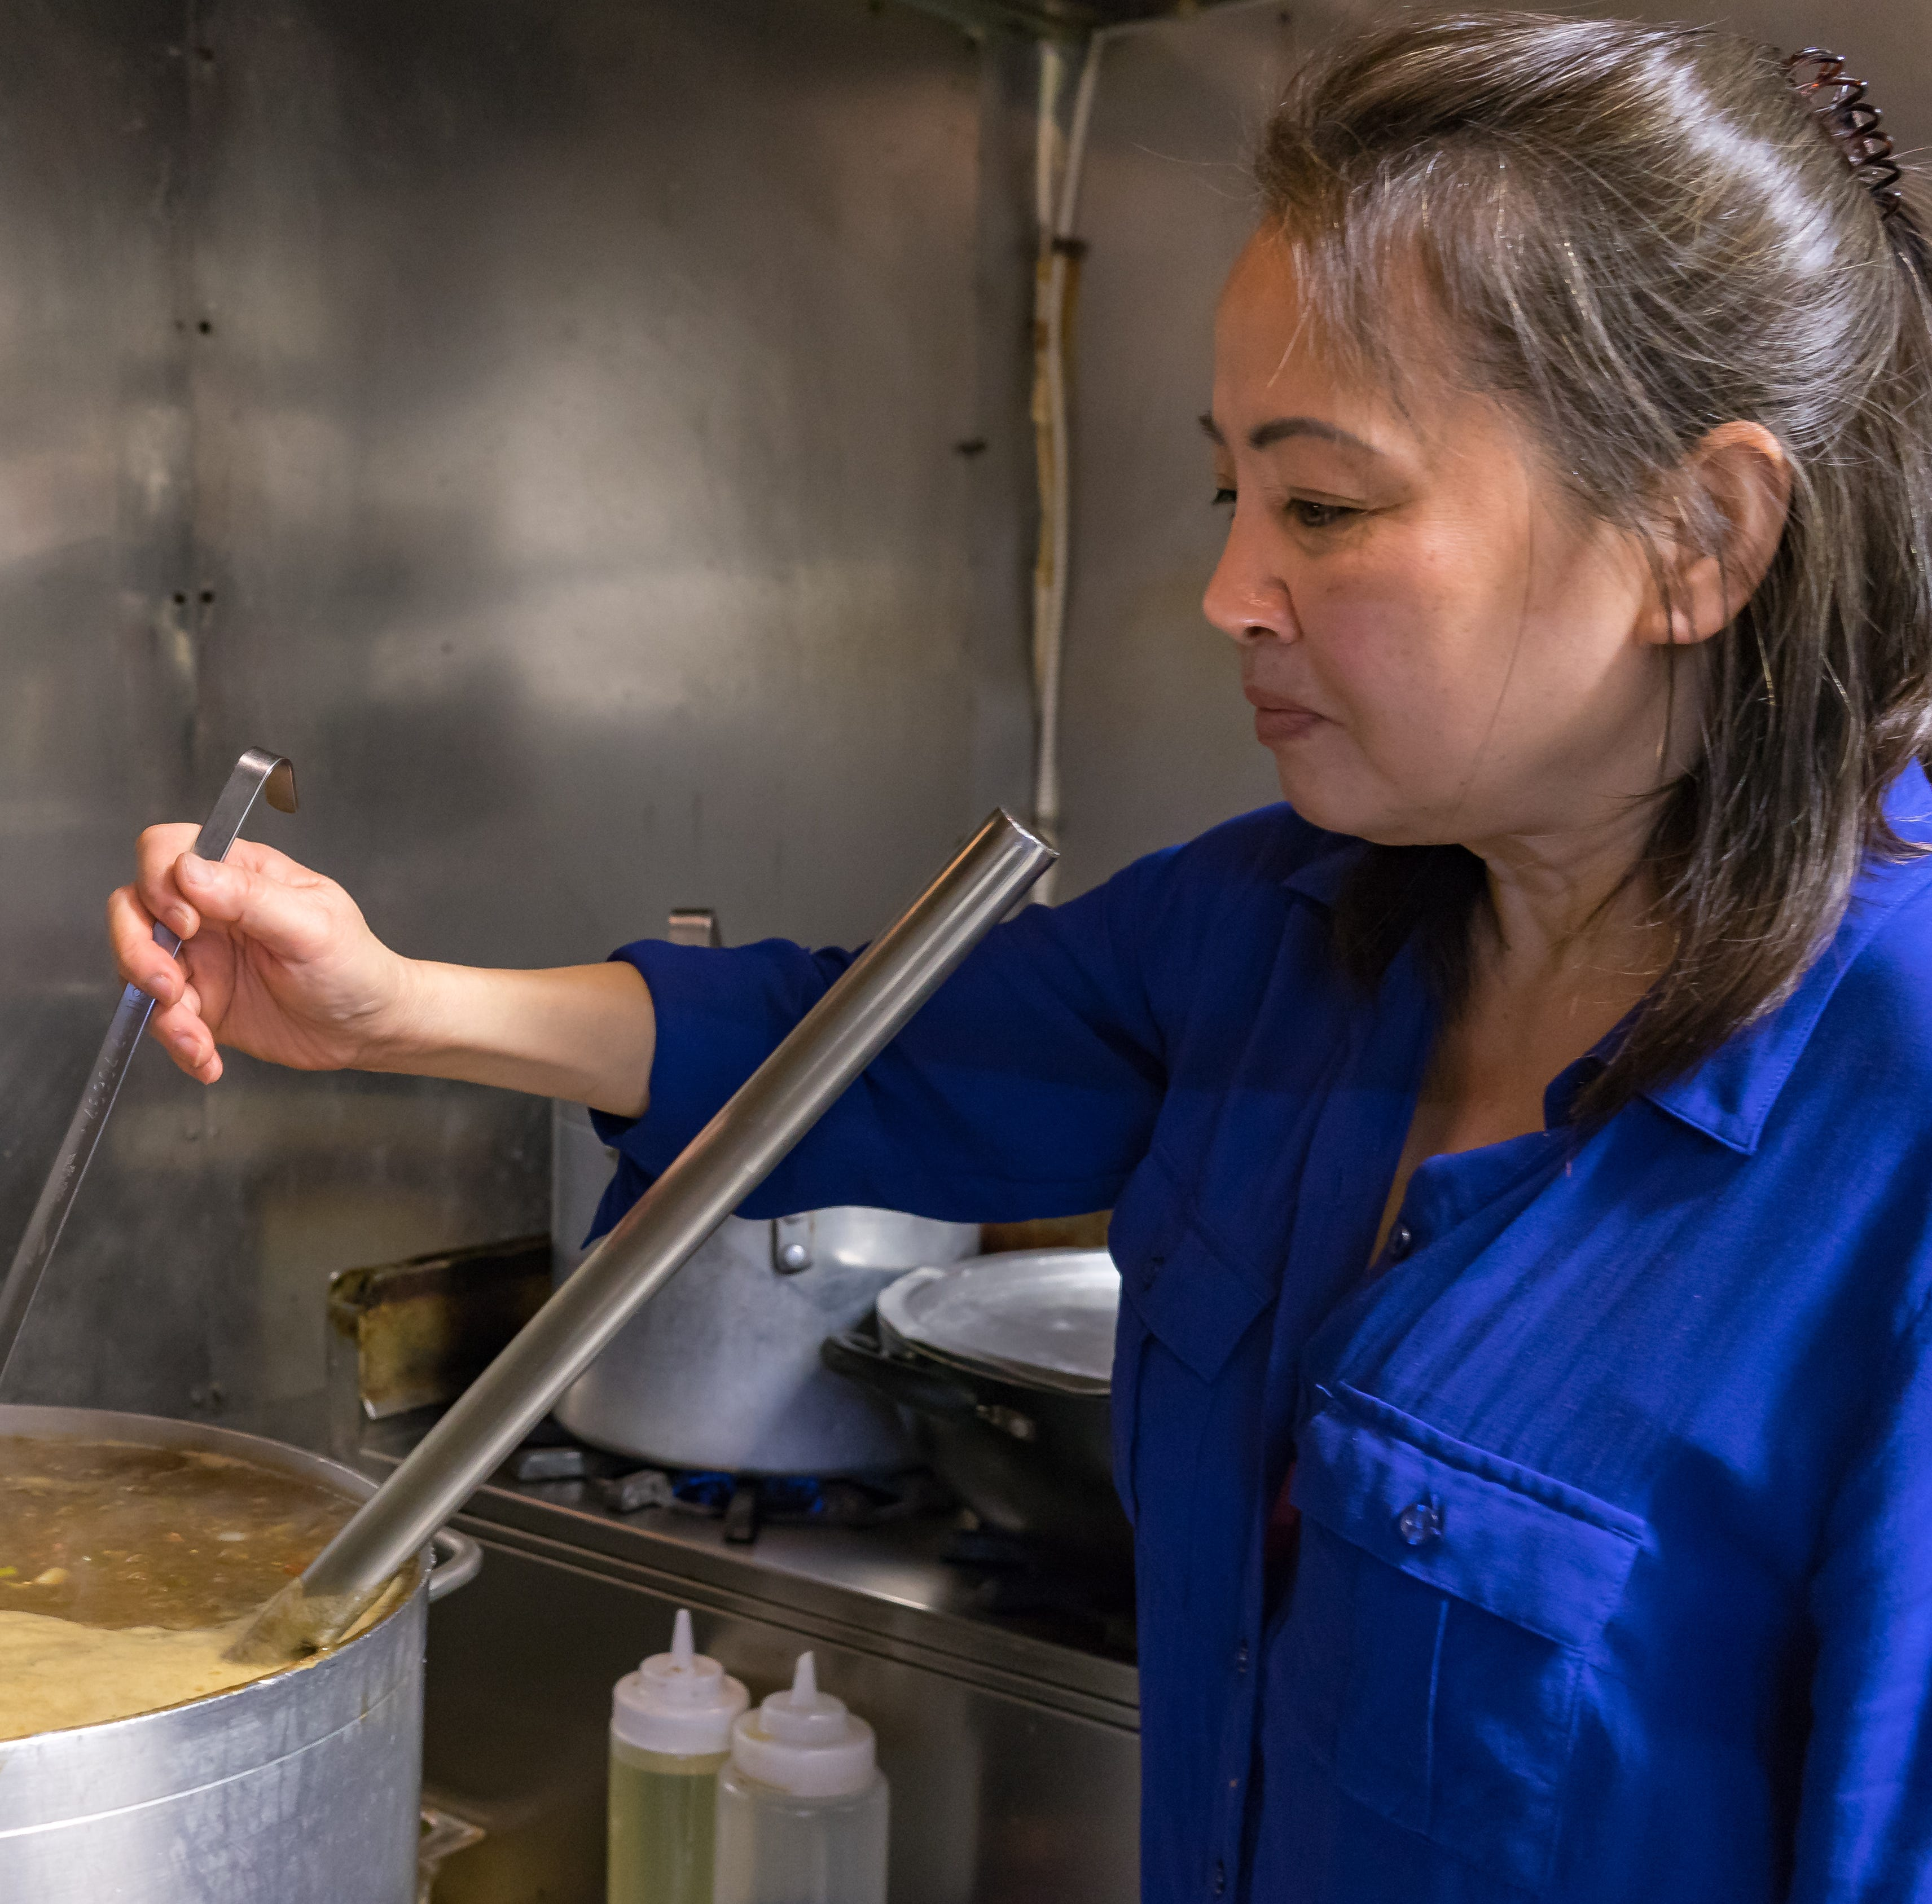 Pensacola convenience store serves homemade gumbo by the gallon